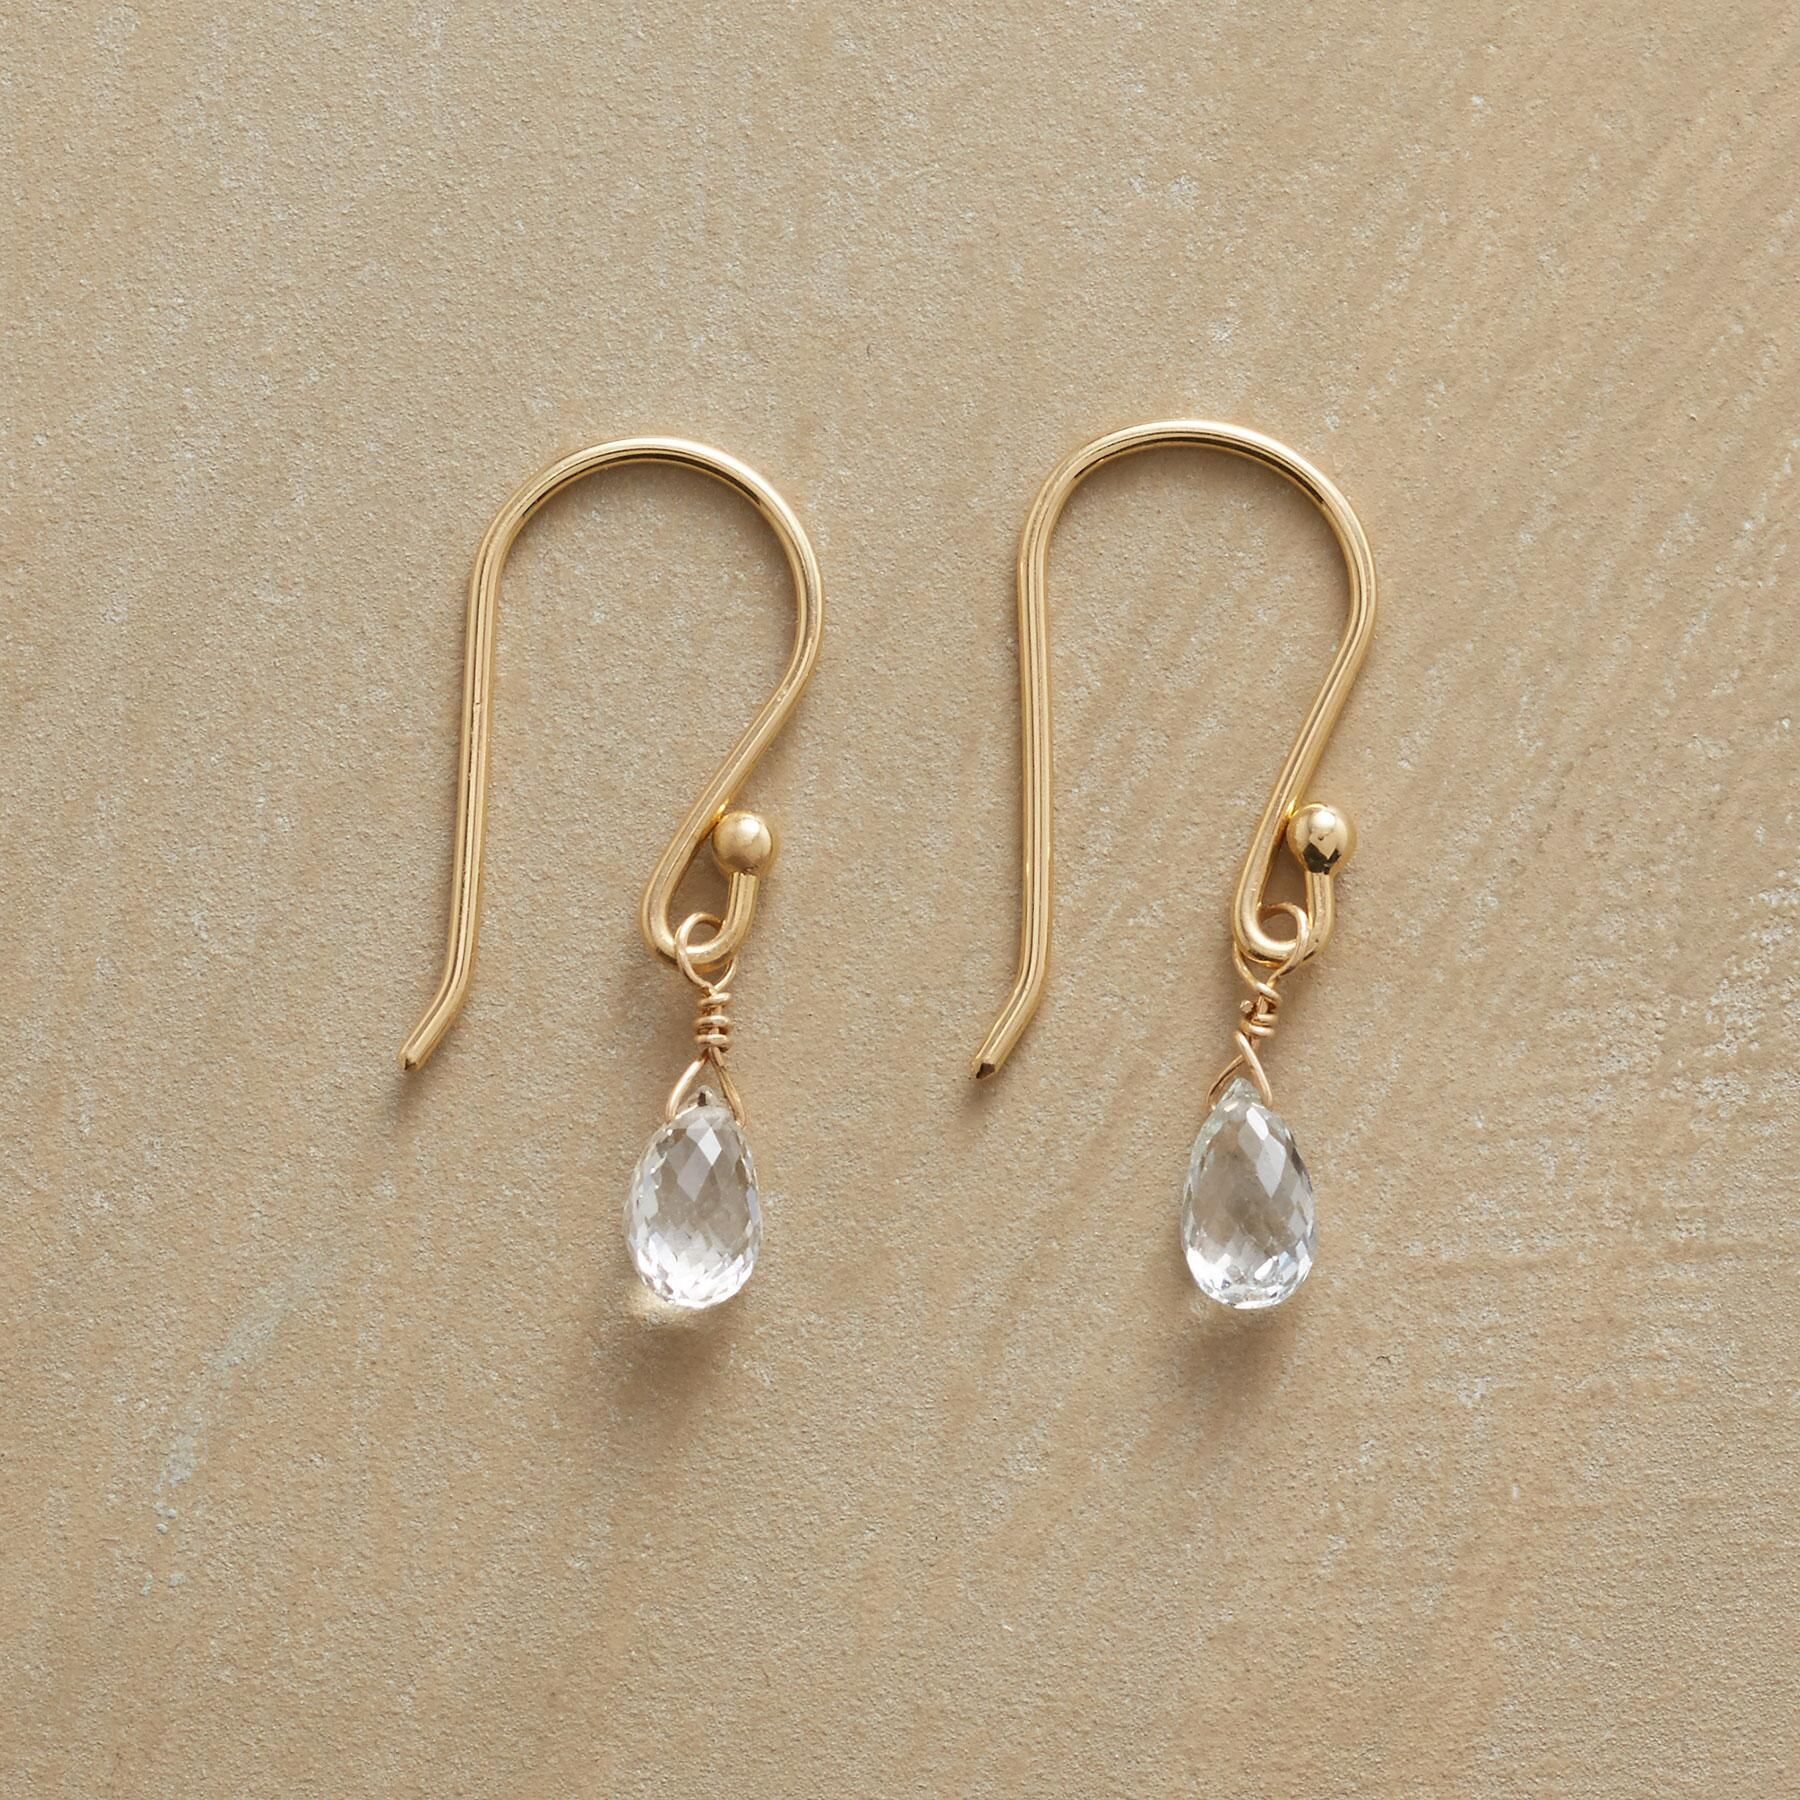 """WONDROUS WHITE SAPPHIRE EARRINGS--One white sapphire per French wire is all it takes to dazzle. Anne Sportun dangling white sapphire earrings handmade in Canada exclusively for Sundance. 3/4""""L."""